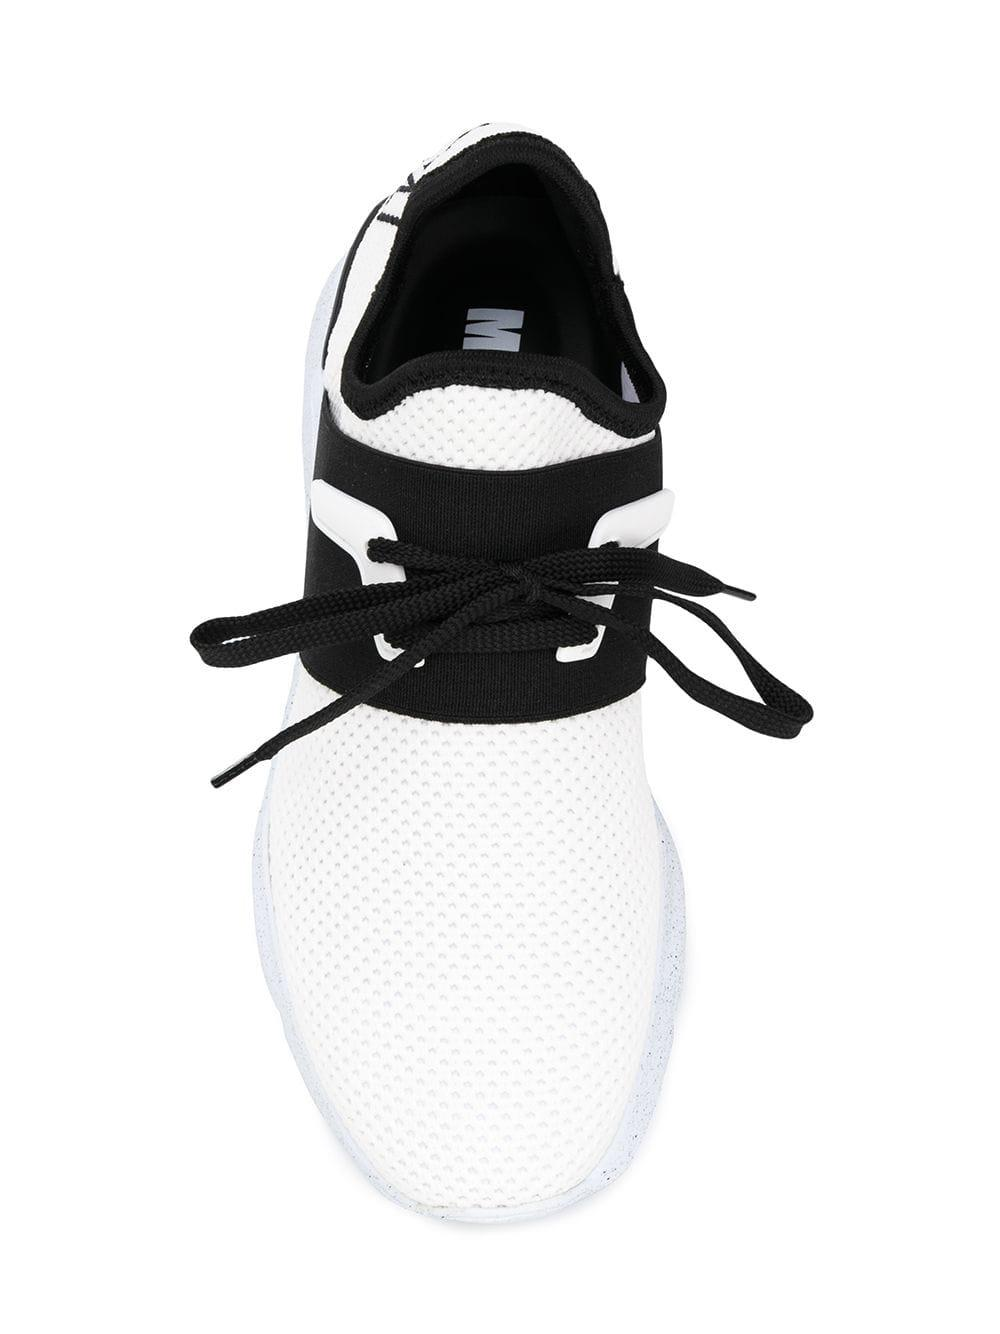 MSGM Leather Logo Embroidered Sneakers in White